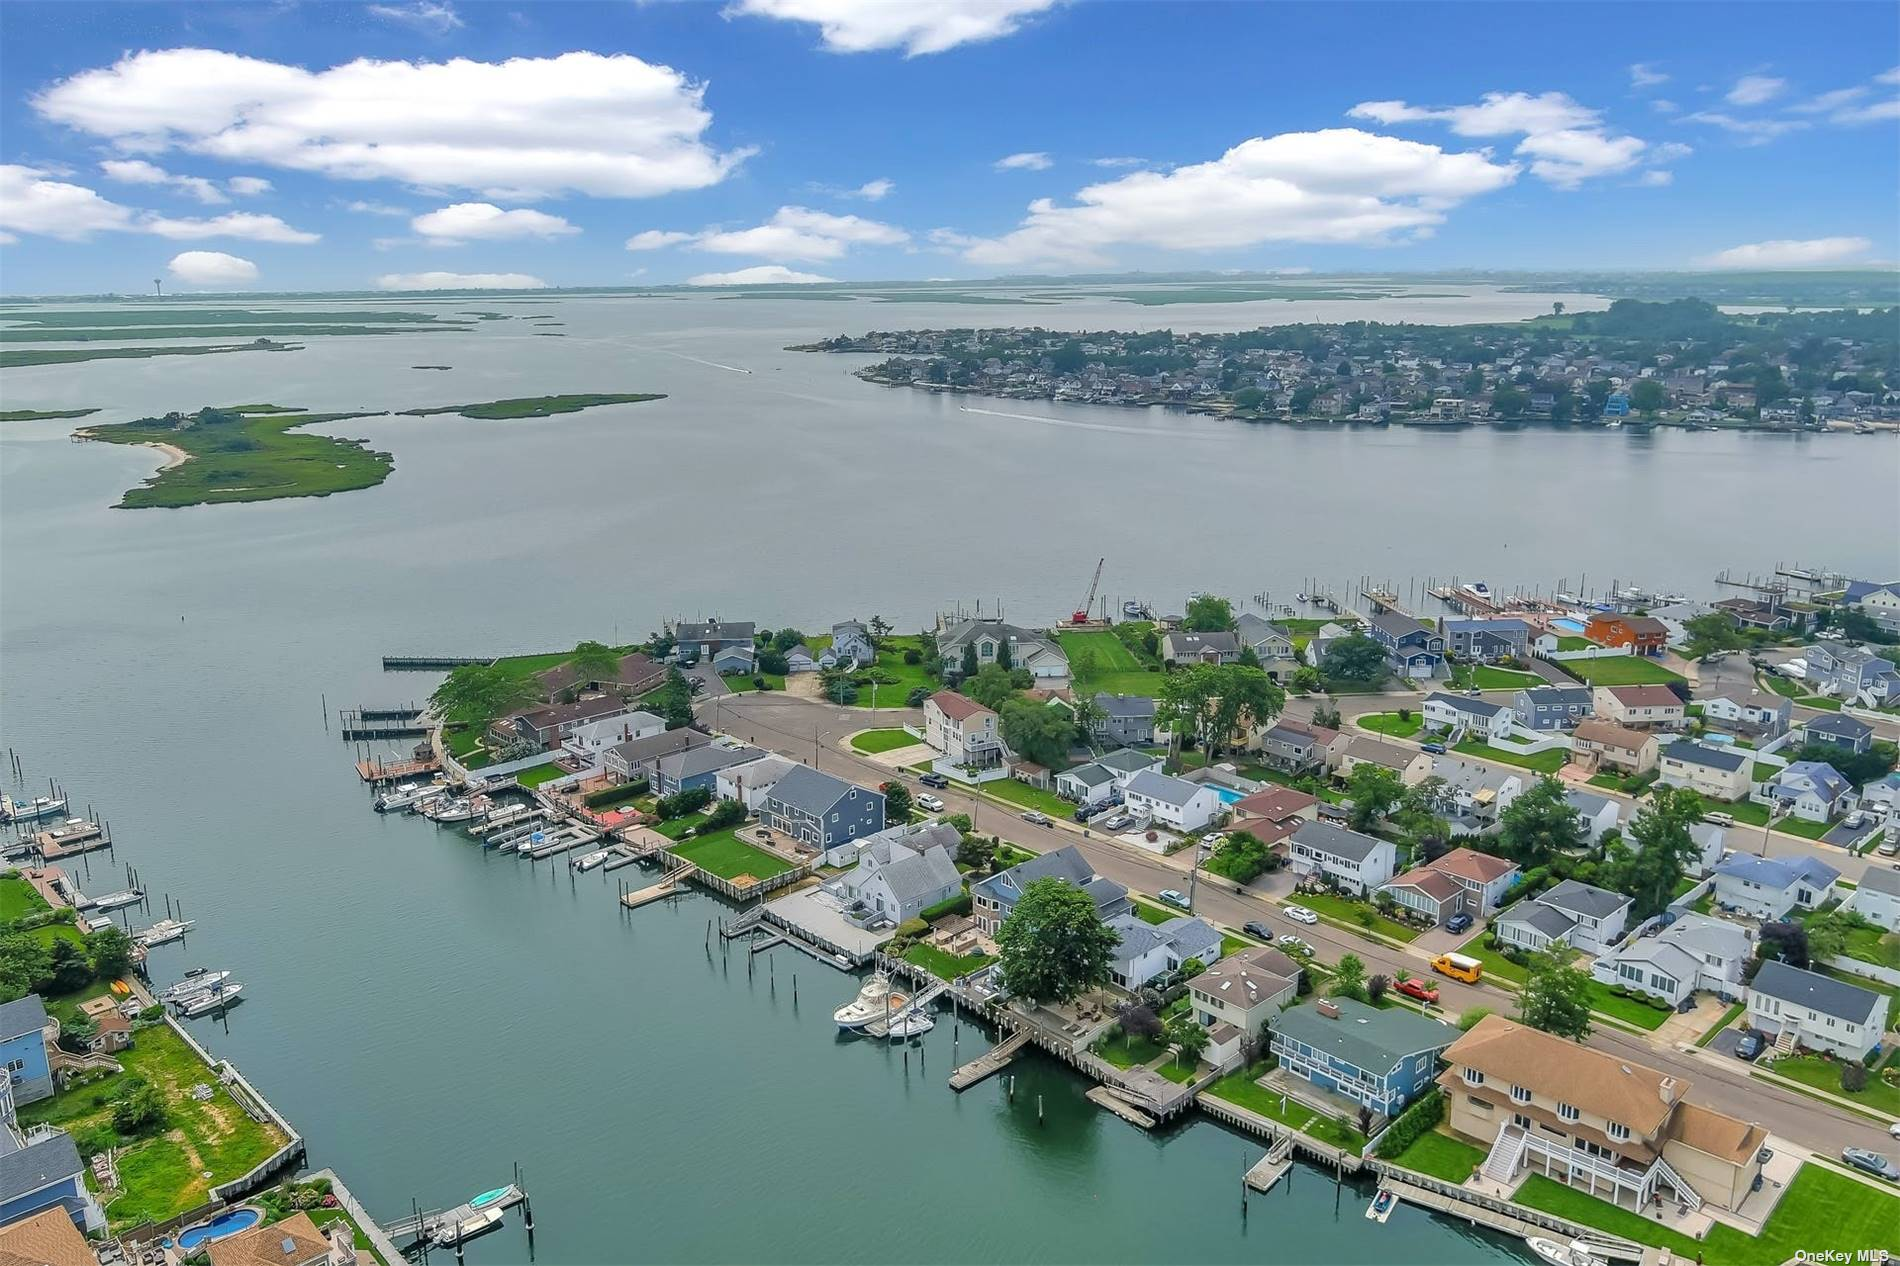 Location, Location, Location! Bring Your Yacht & Enjoy Waterfront Lifestyle in Freeport Deepest & Widest Randall Bay Canal Near Bay & Minutes To Beaches, Split Level Home Offers Lower Level Family Room with Gorgeous Water Views & Leads to 150 Deep Back Yard, Half Bath & Access to Garage, Upper Level Offers Living Room, Formal Dining Room & Eat-In-Kitchen with Water Views & Leads to Deck & Back Yard, 2nd Floor Offers 3 Nice Size Bedrooms & Full Bath w/Skylight, New Roof, Newer Navy Style Bulkhead, Ramp & Floating Dock. Come Home, Relax & Enjoy the Relaxing View & Nature or Hop on the Boat & Take the Family to the Beach or Cruise Around. Long Island is a Great Place to Live!